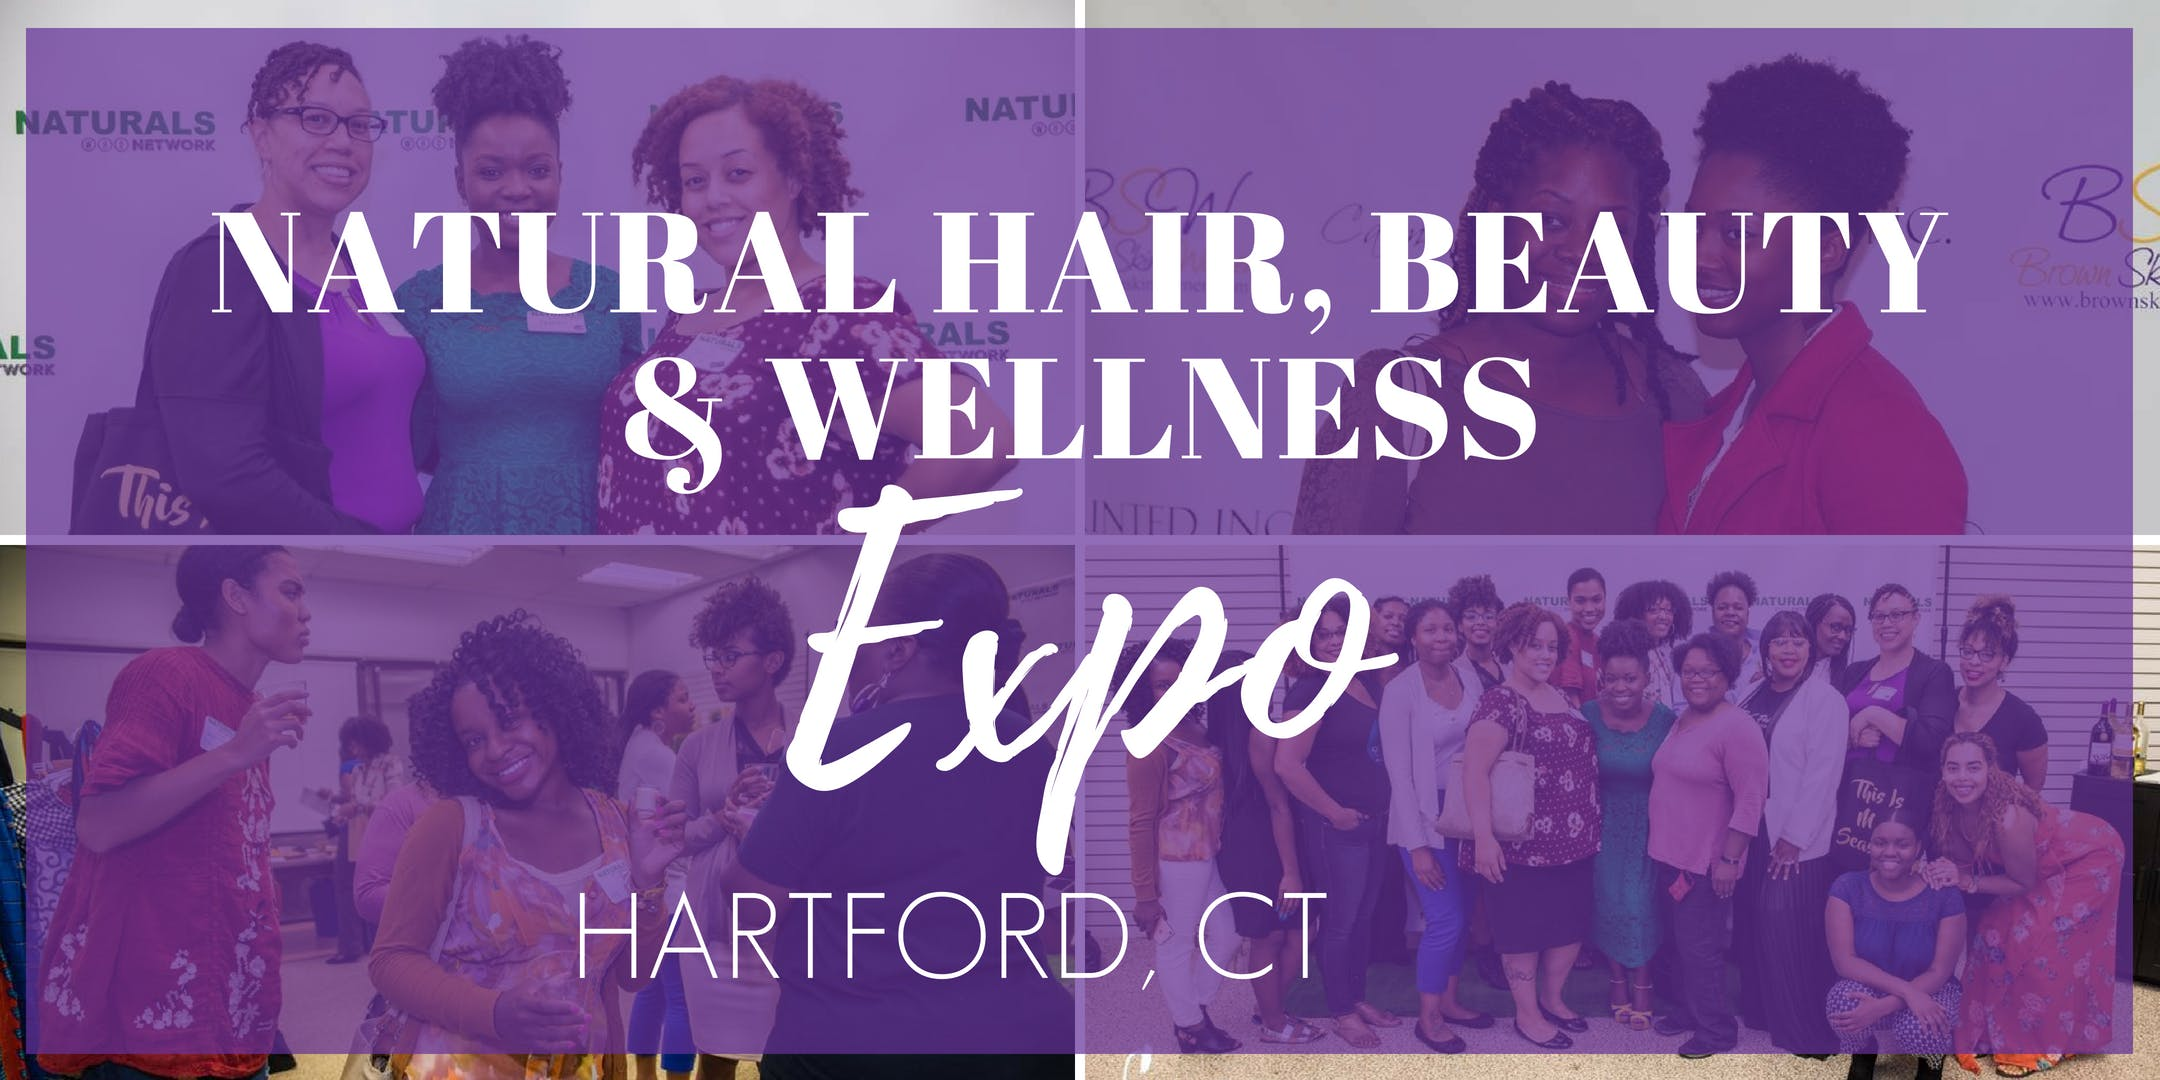 Natural Hair, Beauty & Wellness Expo HARTFORD